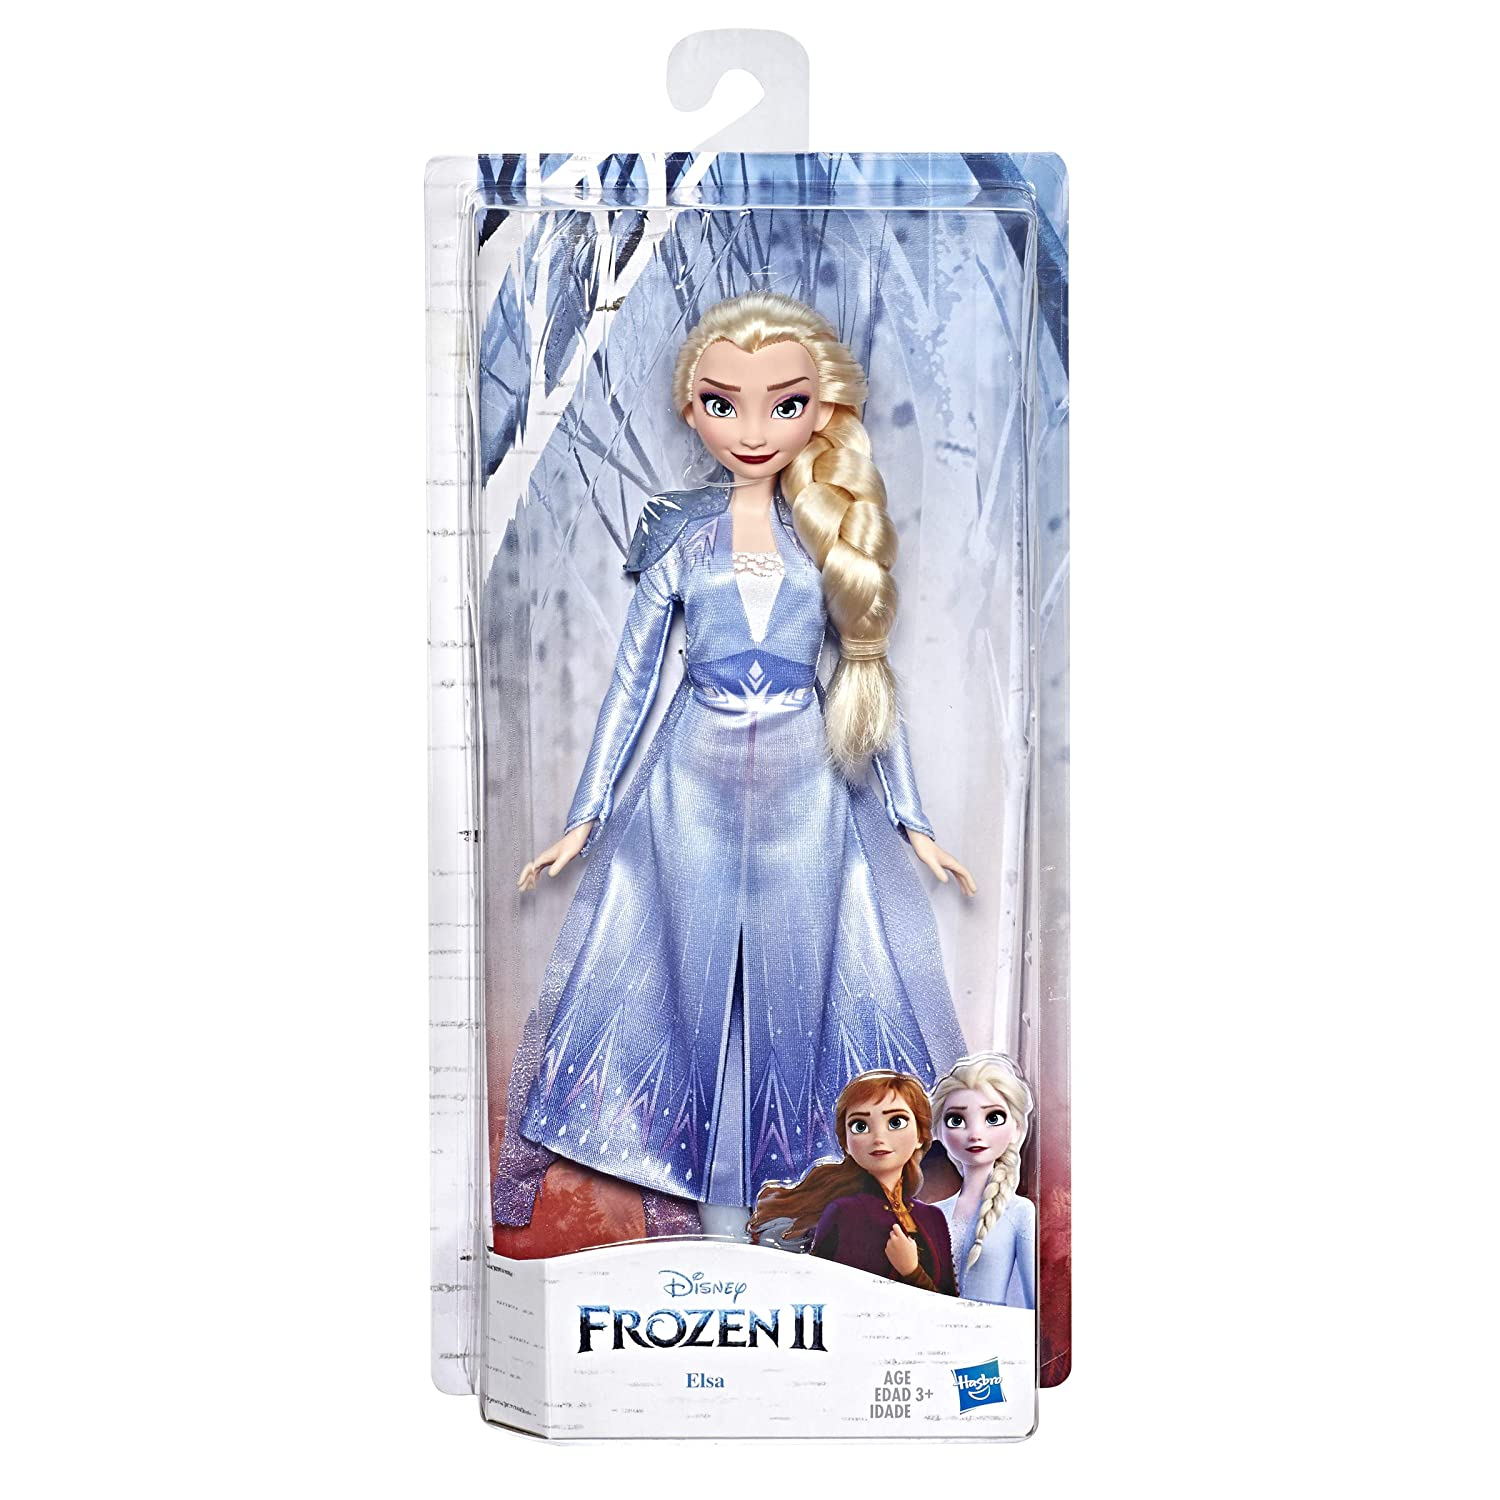 Disney Frozen Elsa Fashion Doll with Long Blonde Hair & Blue Outfit Inspired by Frozen 2 - Toy for Kids 3 Years Old & Up